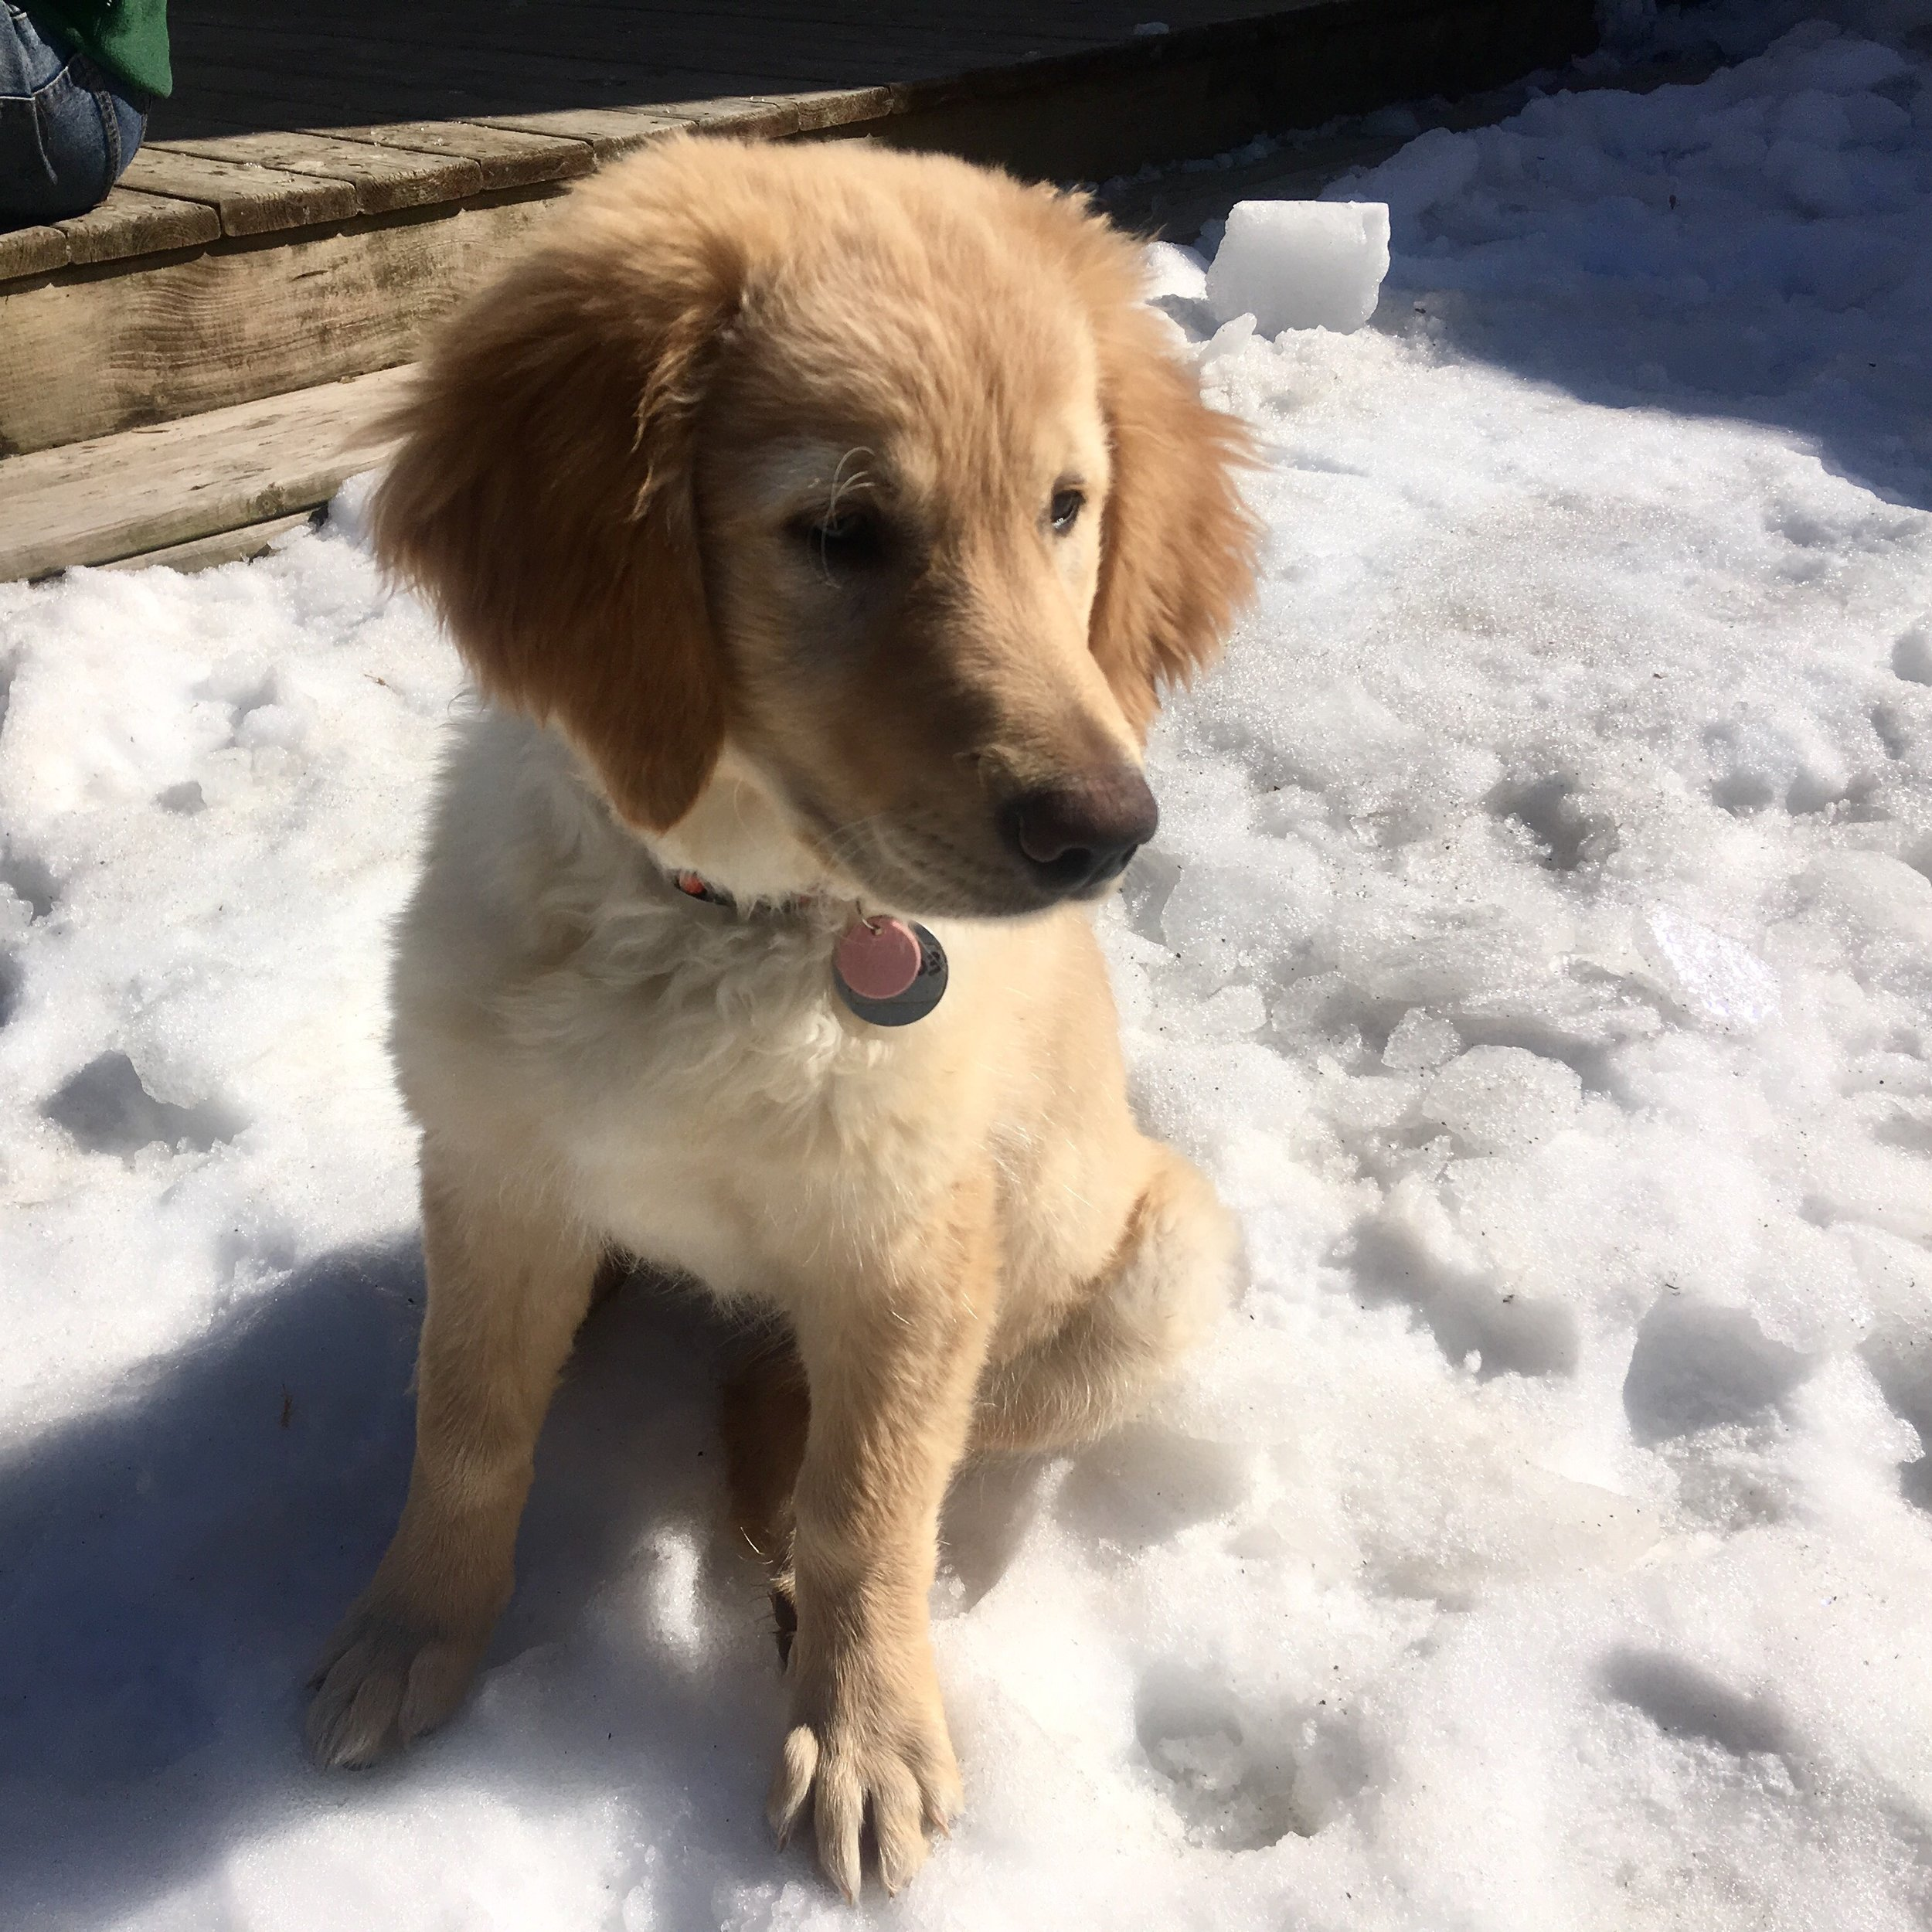 """Hi everyone...Aspen checking in. The biggest news since my last update is that I have grown...a lot! I am now over 33 pounds and growing more each day. The vet says I am going to be a BIG golden girl! I have also shed most of my puppy fluff and am growing in my beautiful wavy golden coat as well as fur feathers on my tail and legs. I am very happy-go-lucky with just a pinch (or maybe three or four) of mischief. I love, Love, LOVE meeting new people and have yet to meet a person that does not instantly become my new """"bestest"""" friend! My favorite thing to do is taking each toy out of my toy bin and spreading them throughout the house. When my foster family puts the toys back in the bin, I just take everything out again. (I'm not sure my foster family truly understands the """"toy chic"""" interior design style I am trying to achieve in the house!) I should be ready for my adoption day in less than a month. To my new family - please have LOTS of toys ready! I know you'll absolutely love how I re-decorate your home!!! Lots of puppy licks and love are sent your way!  ~Aspen"""